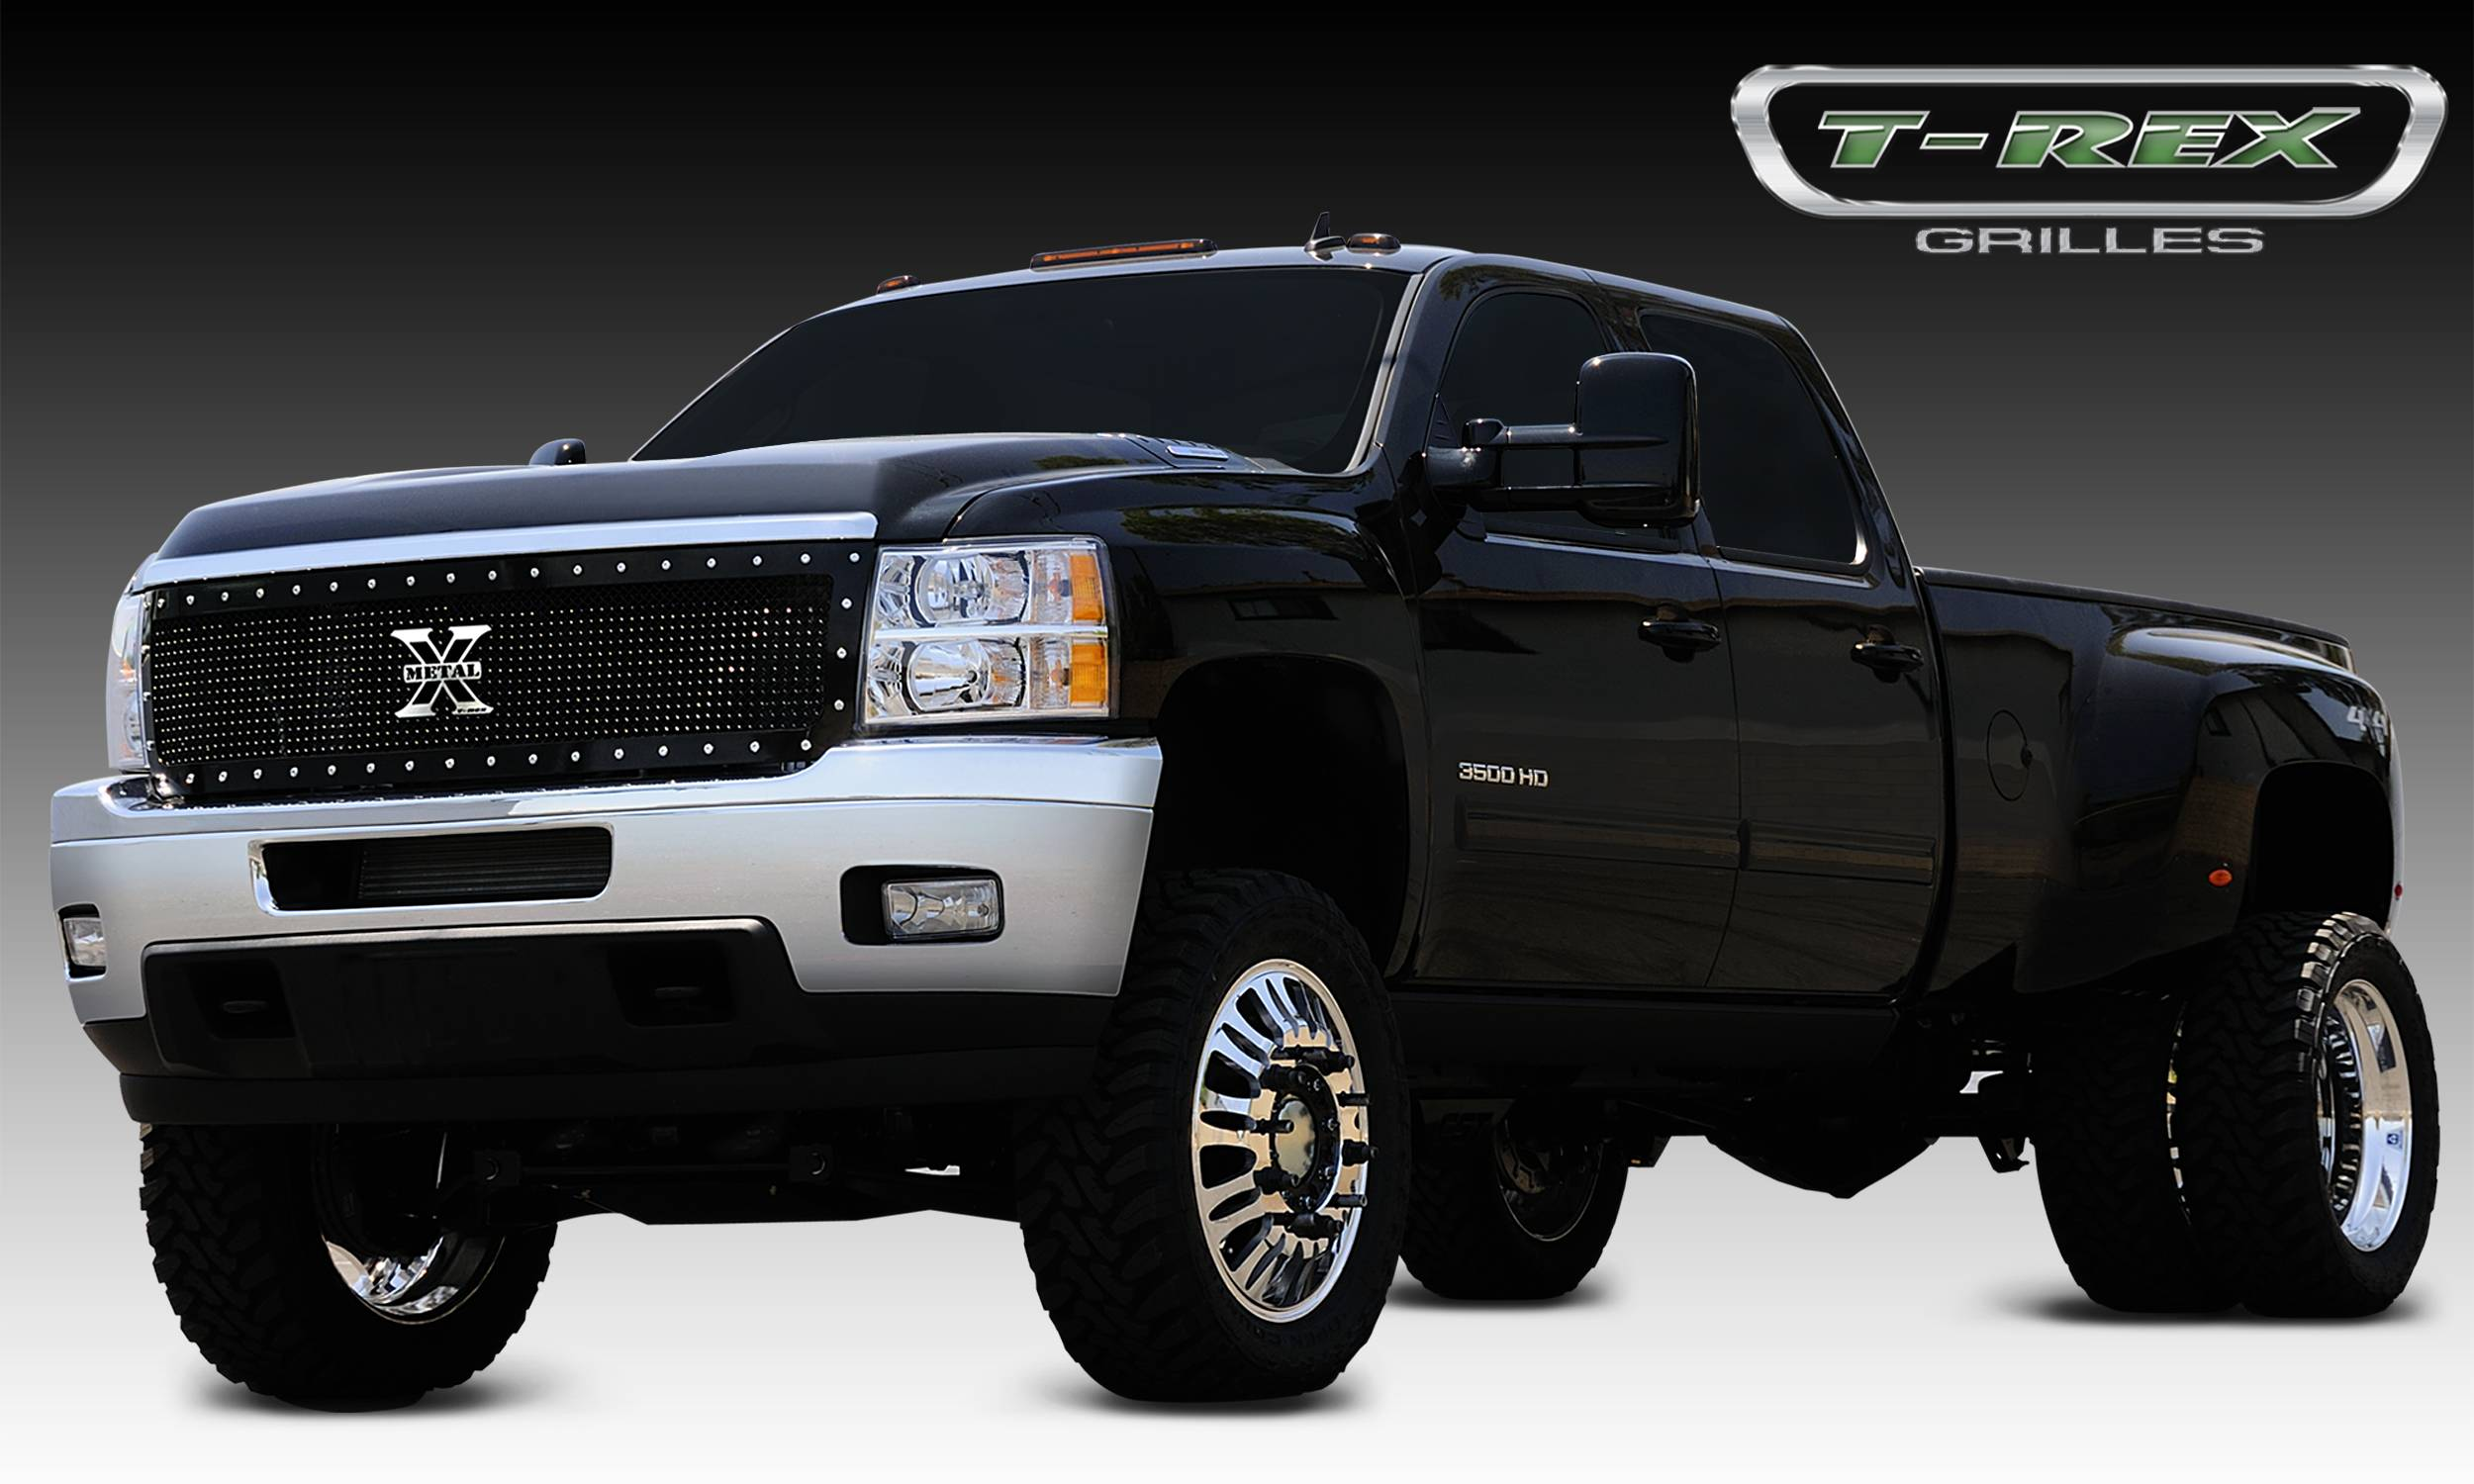 Chevrolet Silverado HD X-METAL Series - Studded Main Grille - ALL Black - Custom 1 Pc Style Replaces OE Grille UPS OS3 - Pt # 6711151